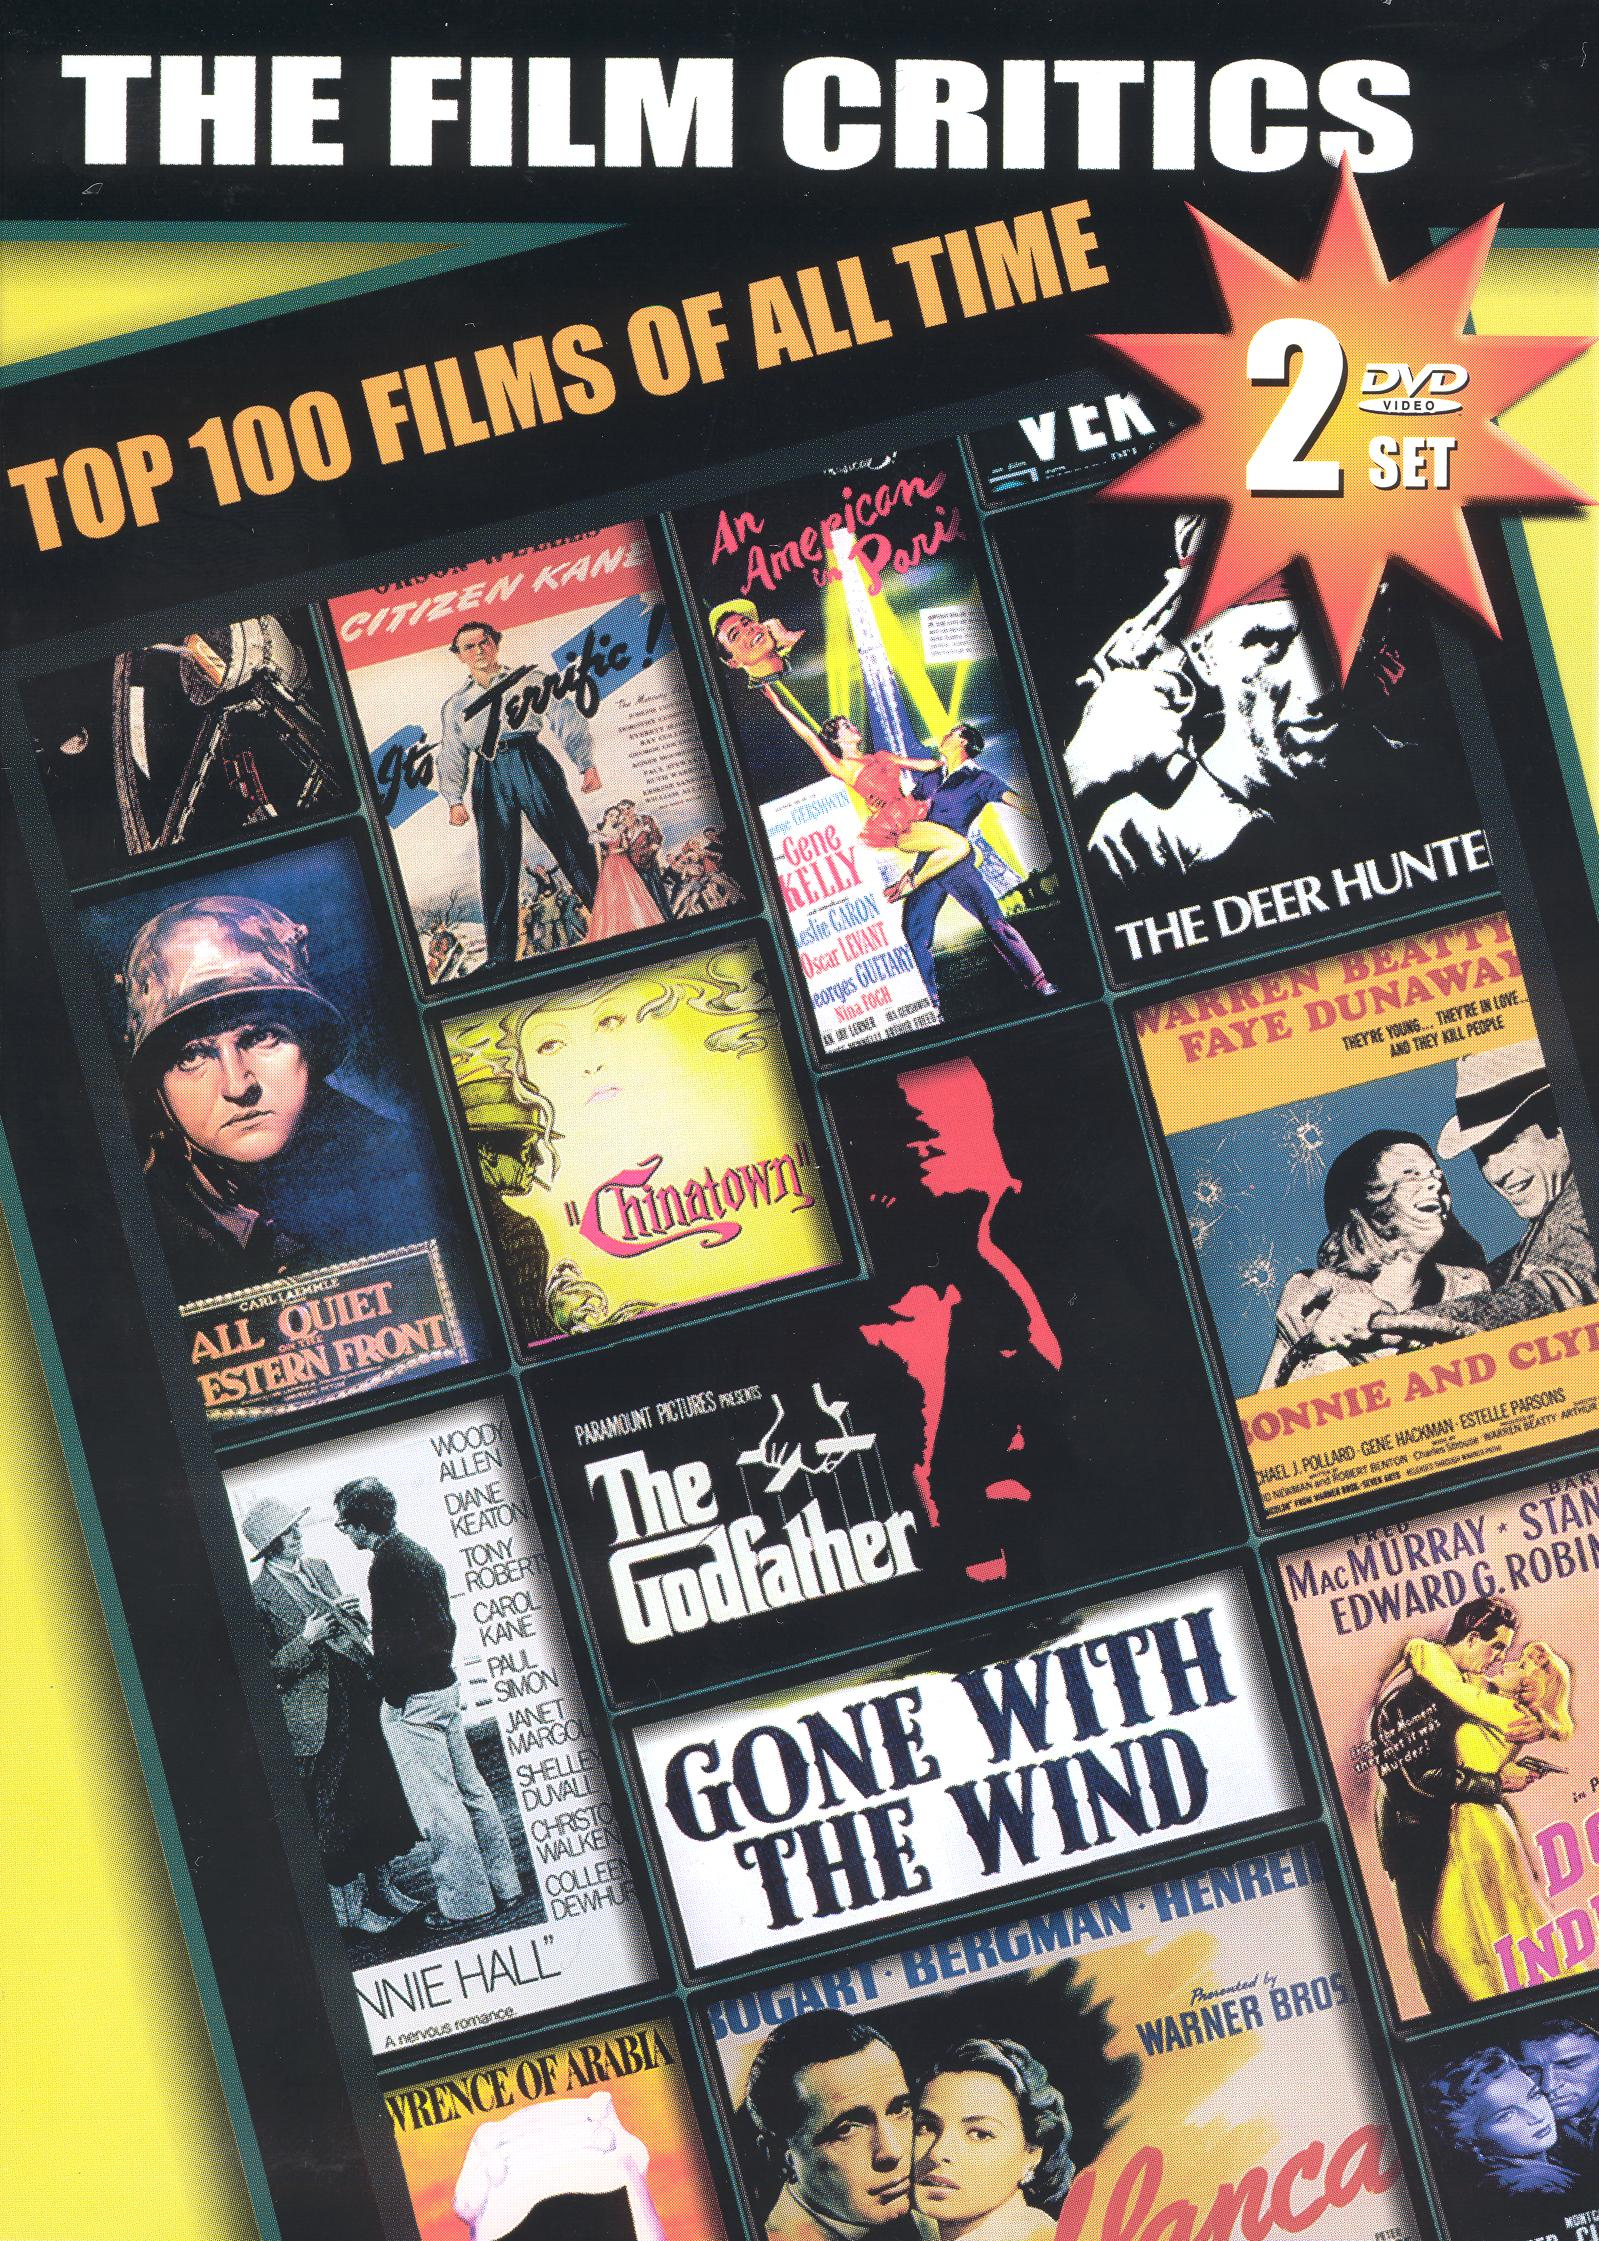 Film Critics: Top 100 Films of All Time